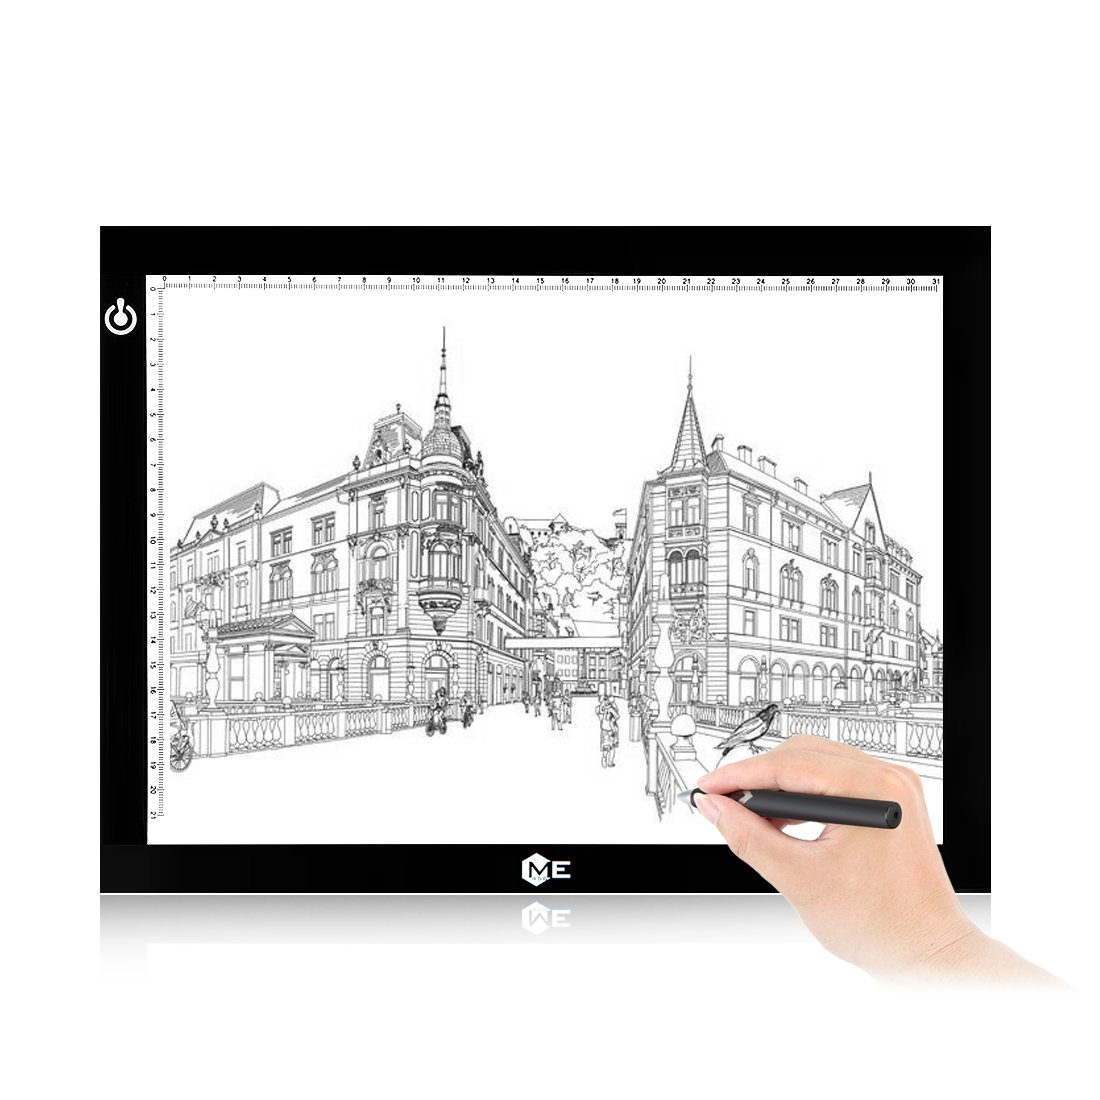 Dimmable A4 LED Tracer Light Box Slim Light Pad, ME456 USB Power Drawing Copy Board Tattoo Tracing LED Light Table for Artists Designing, Animation, Sketching, Stenciling (Black) by ME456 (Image #8)